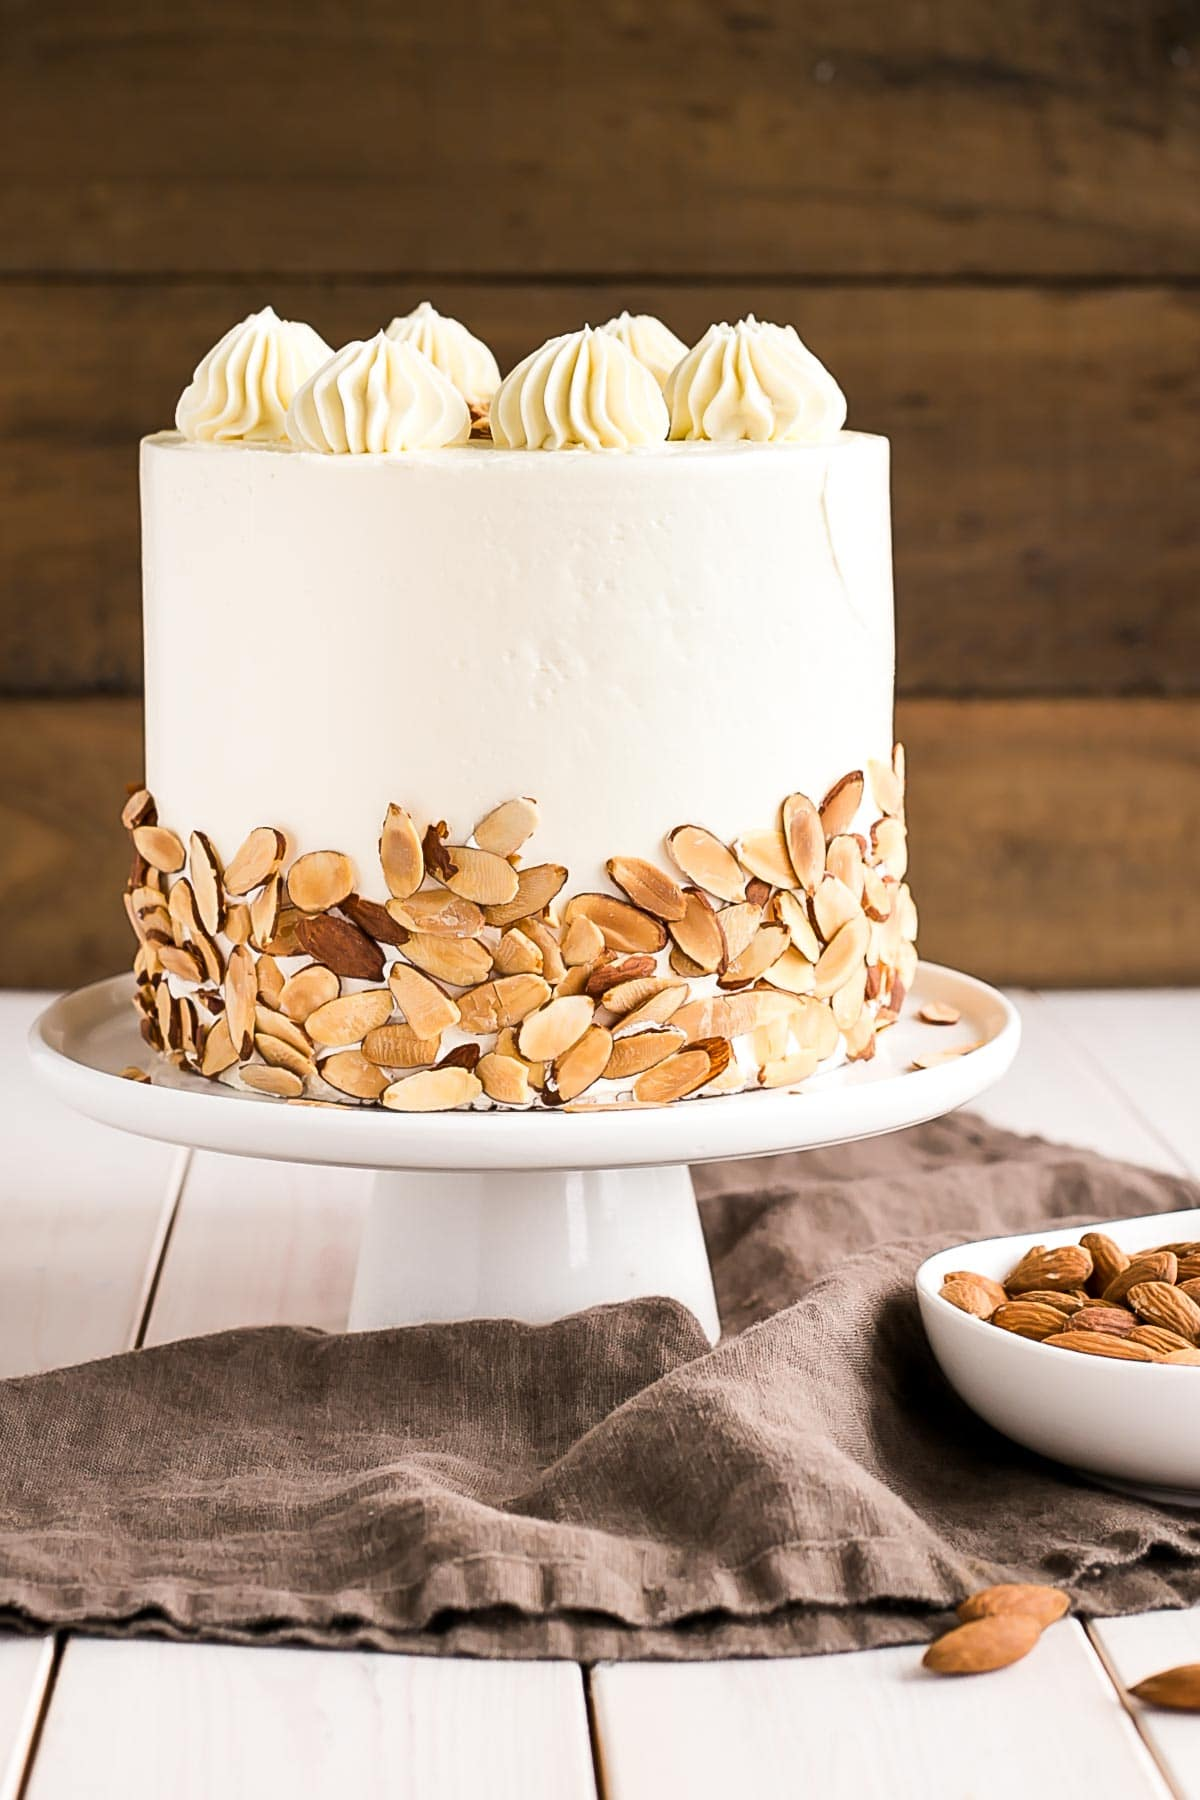 Almond cake layers infused with Amaretto liqueur paired with a classic vanilla buttercream